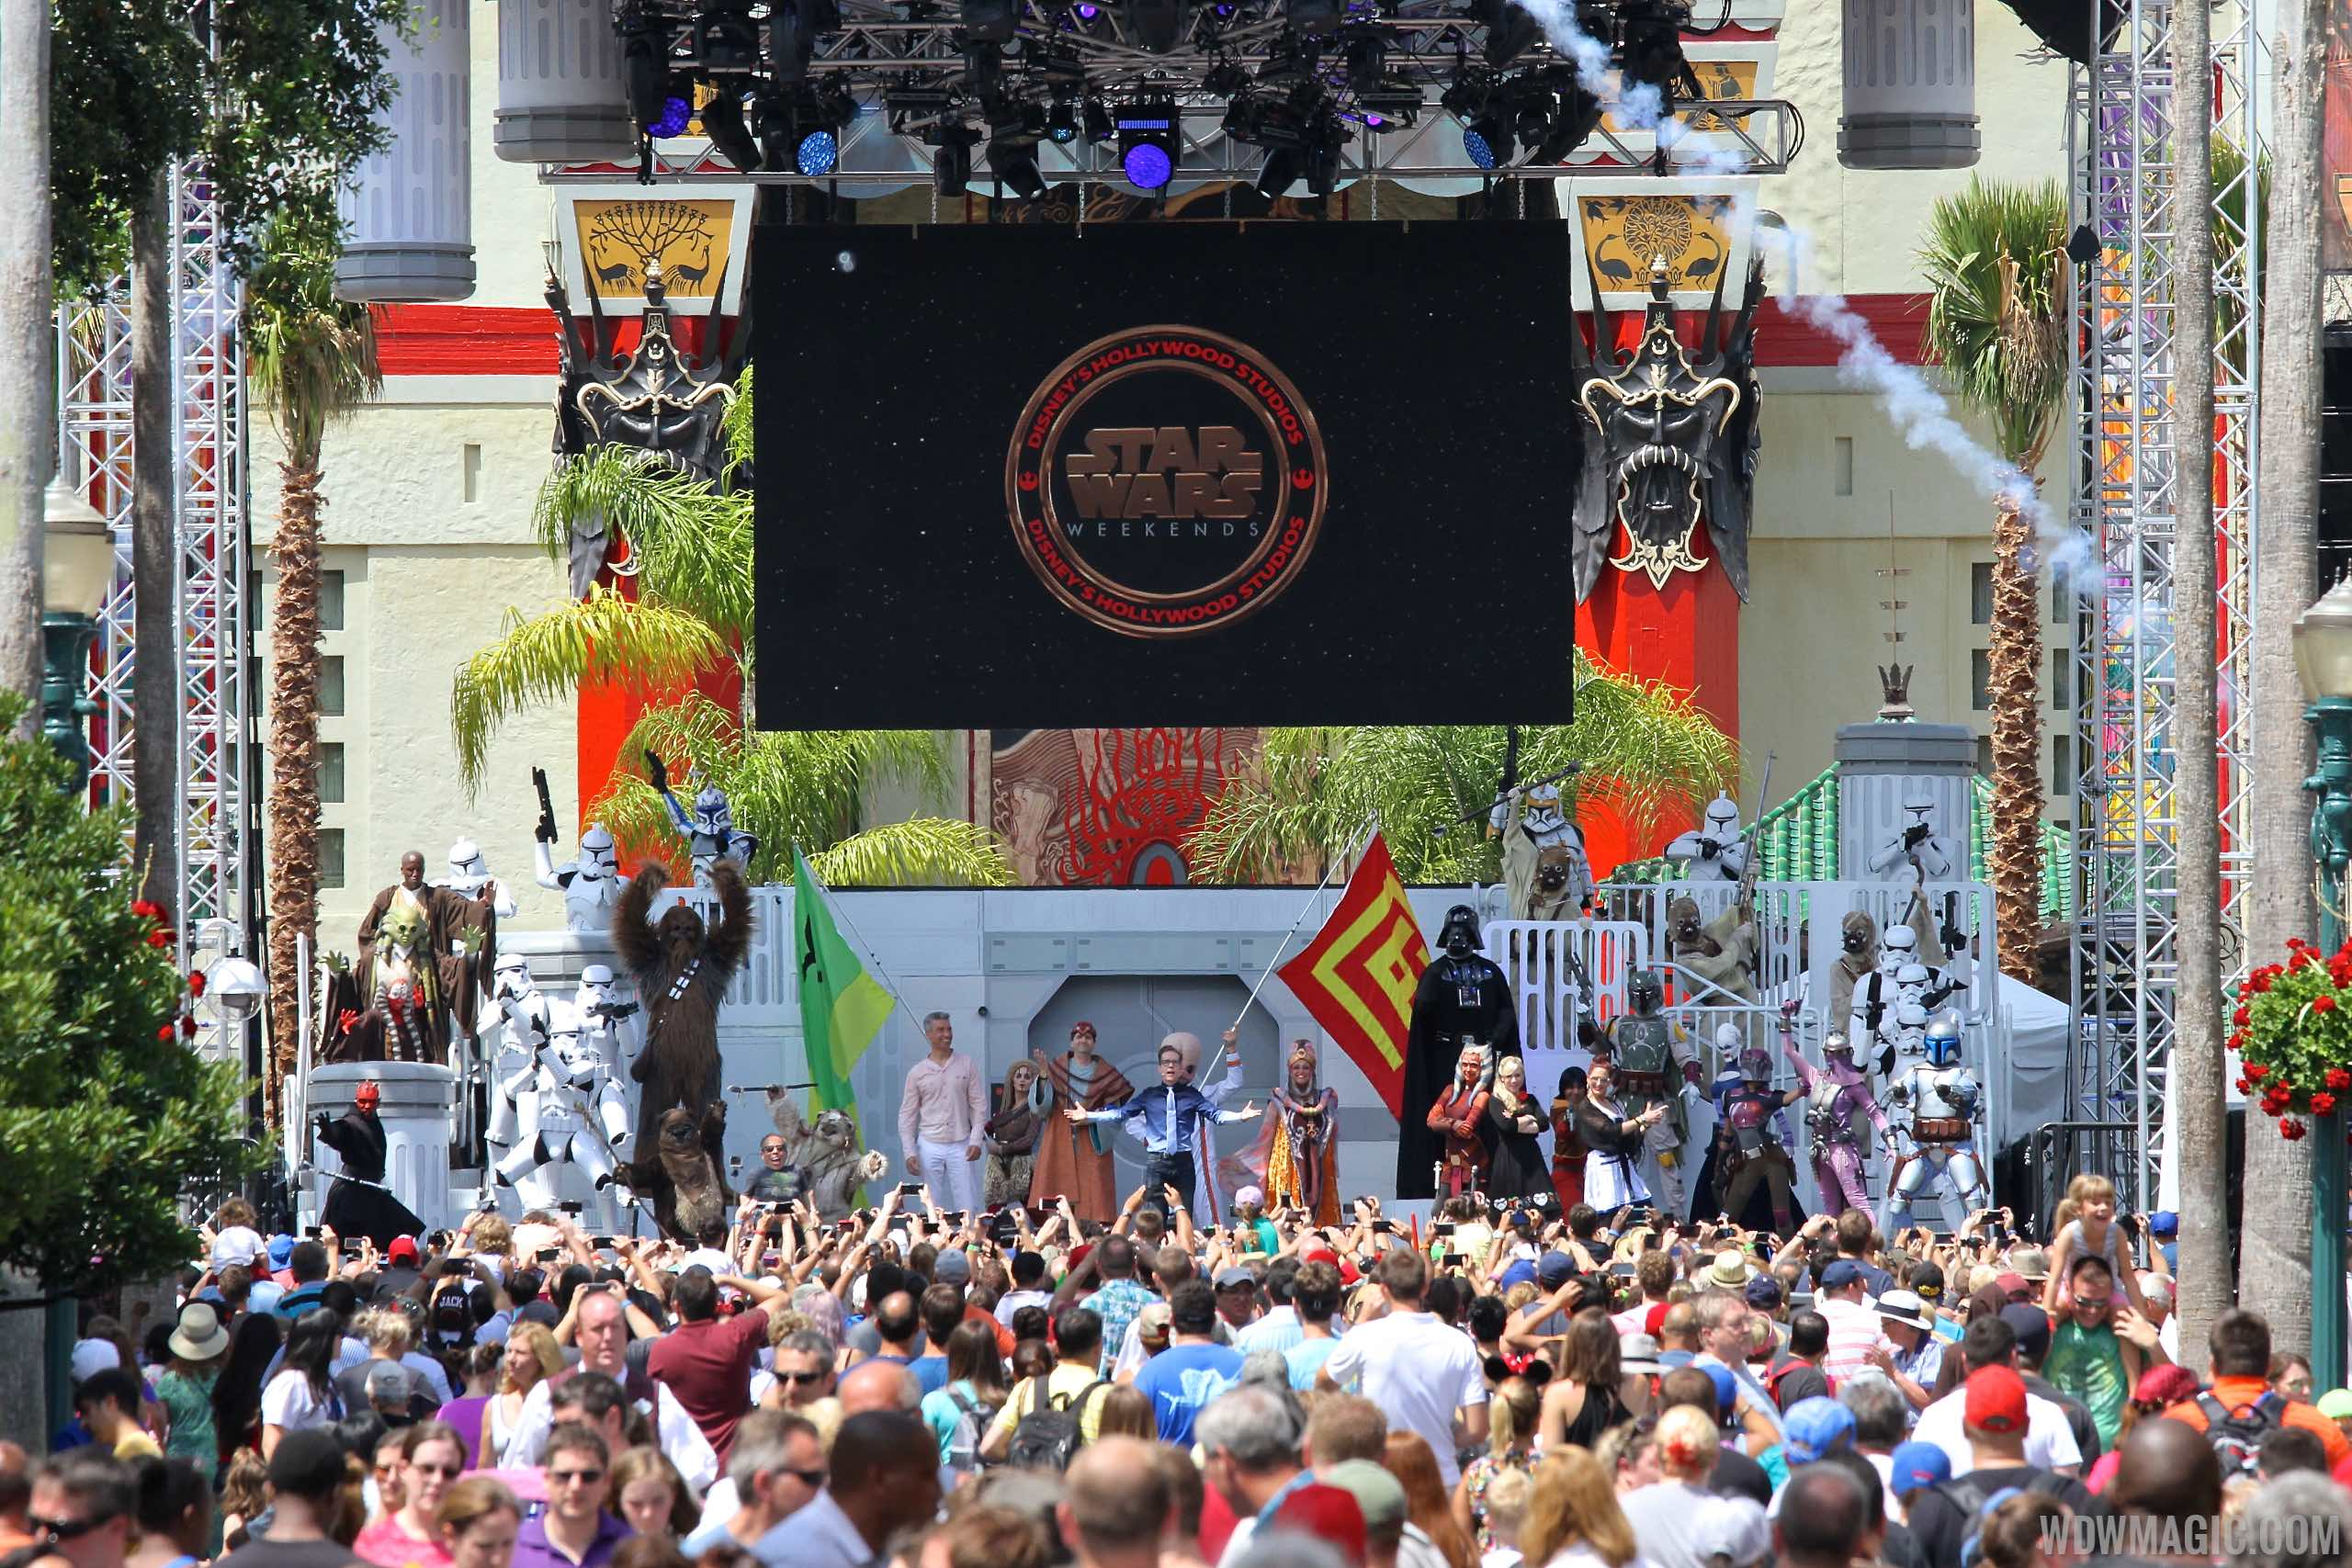 2015 Star Wars Weekends - Weekend 2 Legends of the Force motorcade celebrities